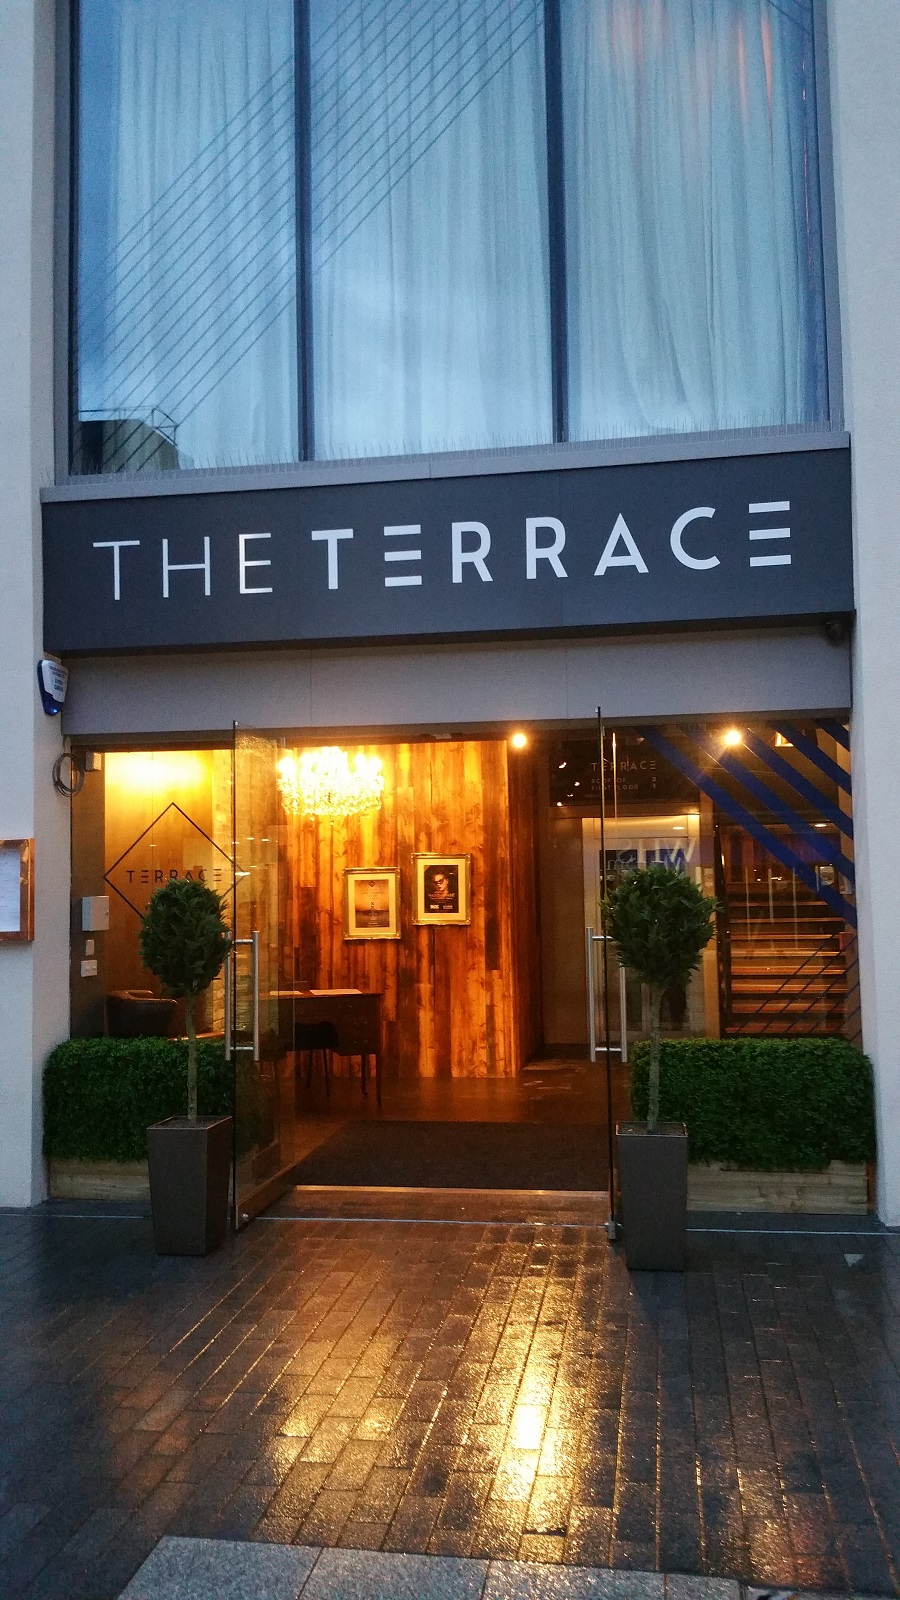 Some great images of the terrace in exeter old barn audio for Use terrace in a sentence